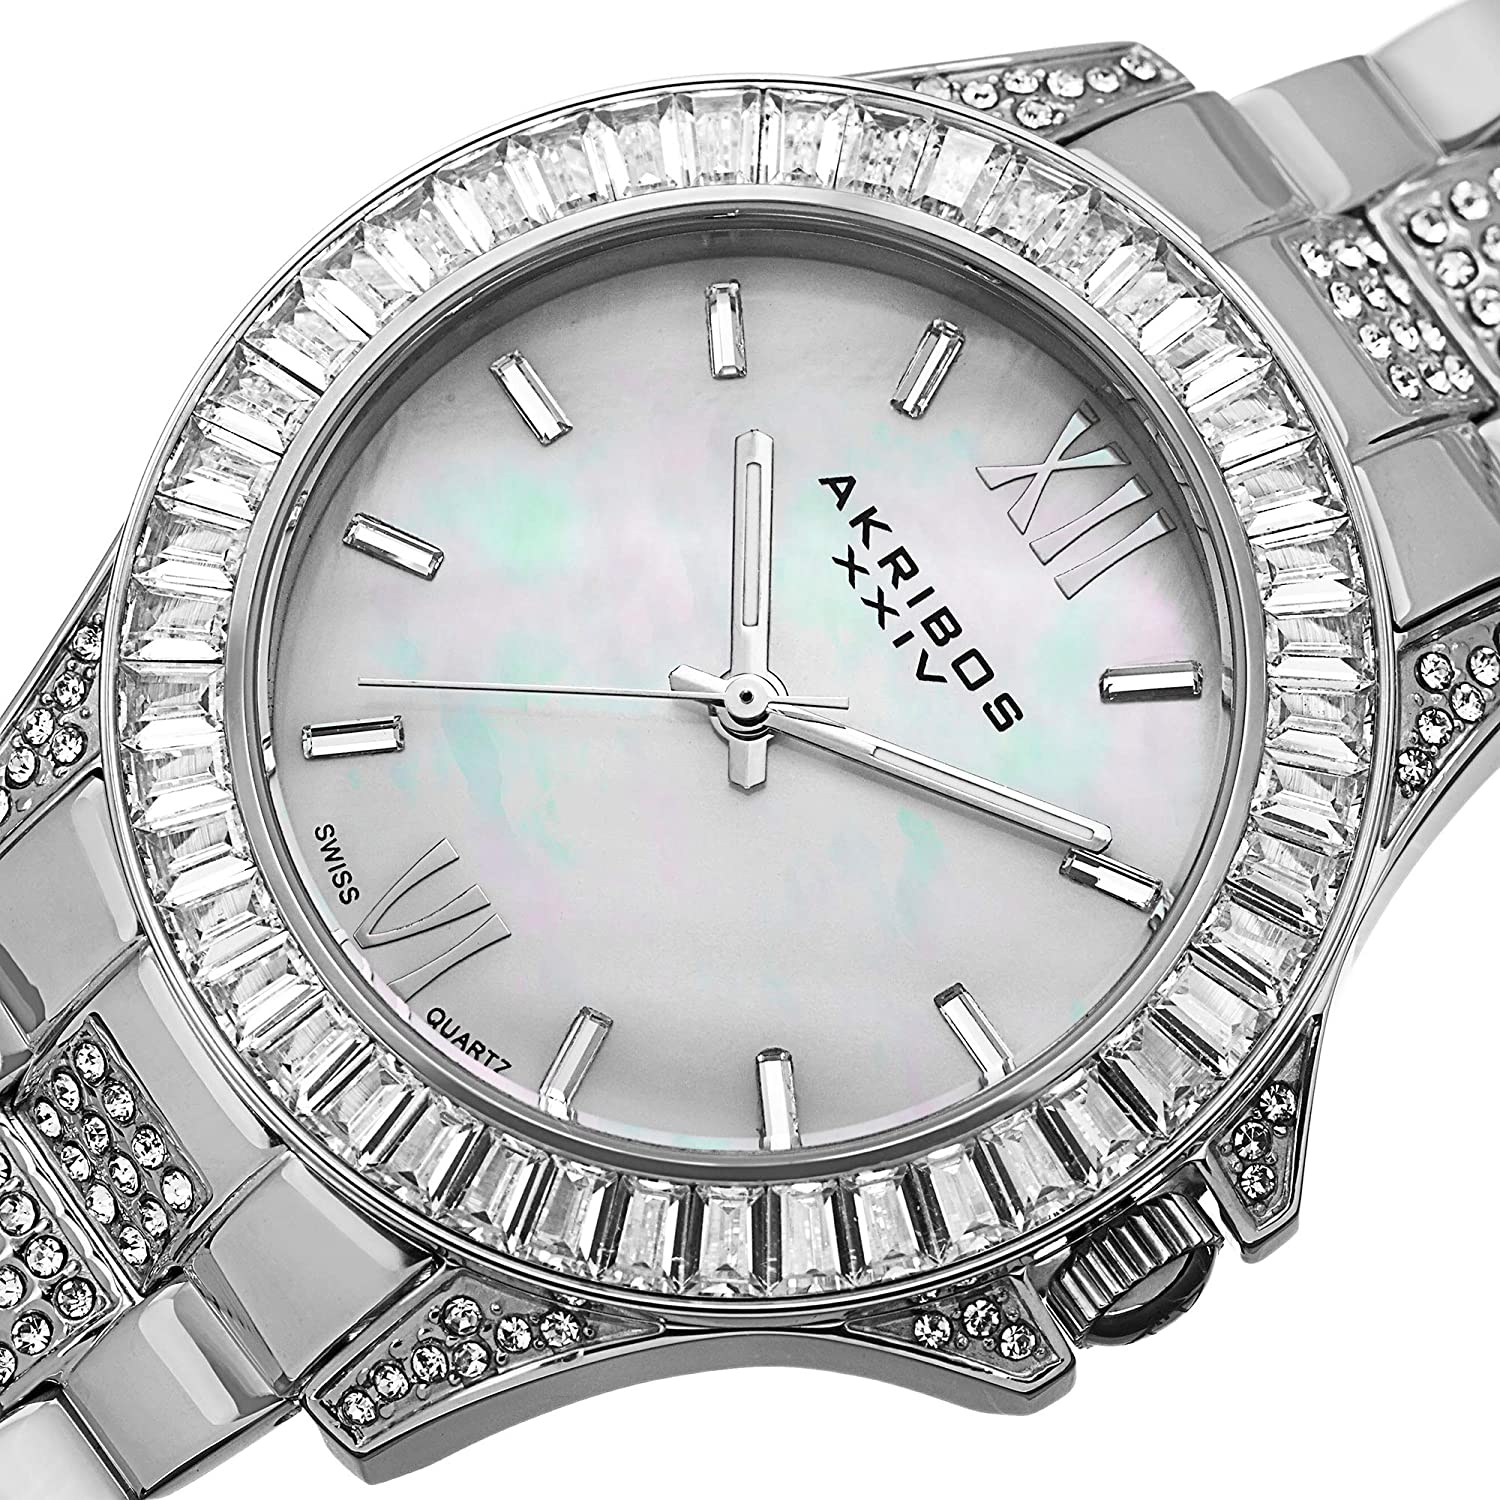 Akribos XXIV Women's 'Impeccable' Swiss Quartz Watch - Mother-of-Pearl Dial Large Baguette Crystals Bezel On Stainless Steel Bracelet - AK670 Stainless Steel